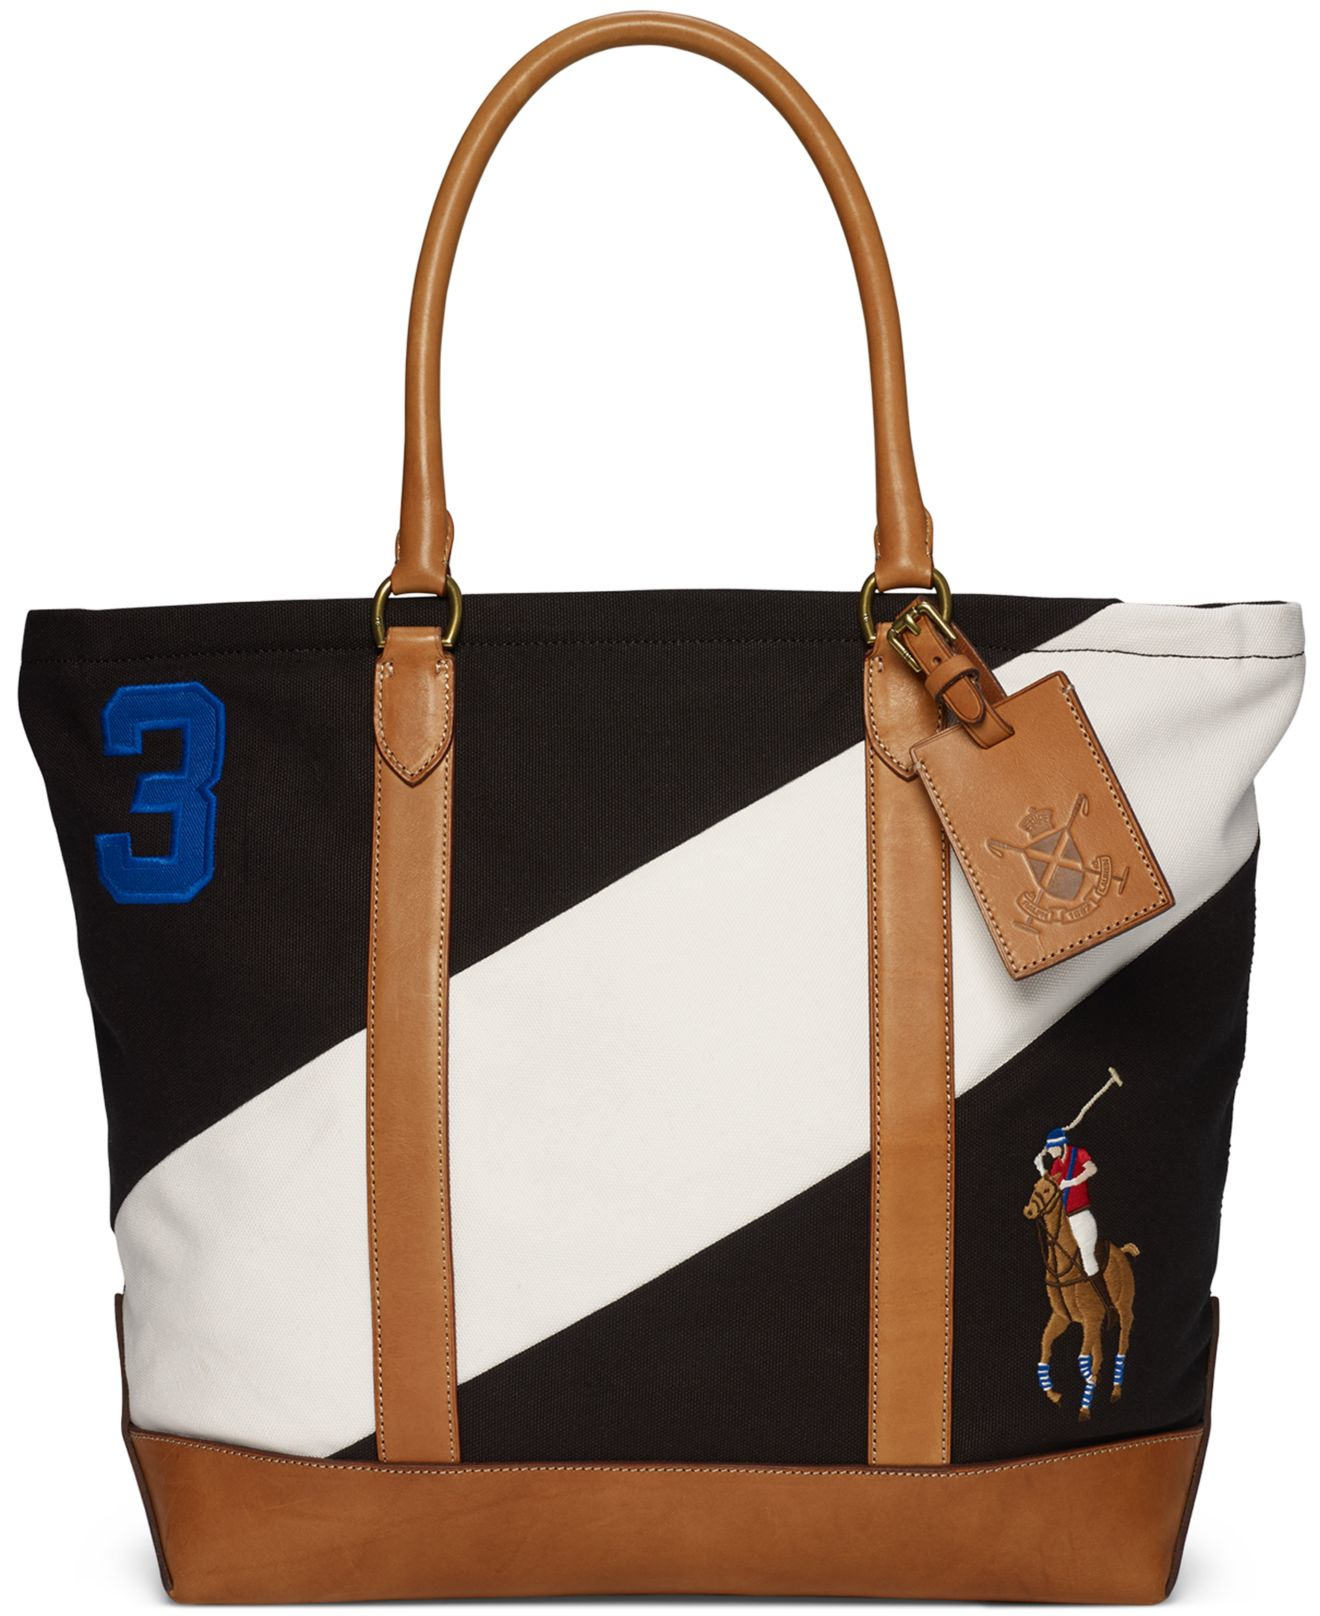 090eabd5fb Polo Ralph Lauren Colorblocked Tote for Men - Lyst